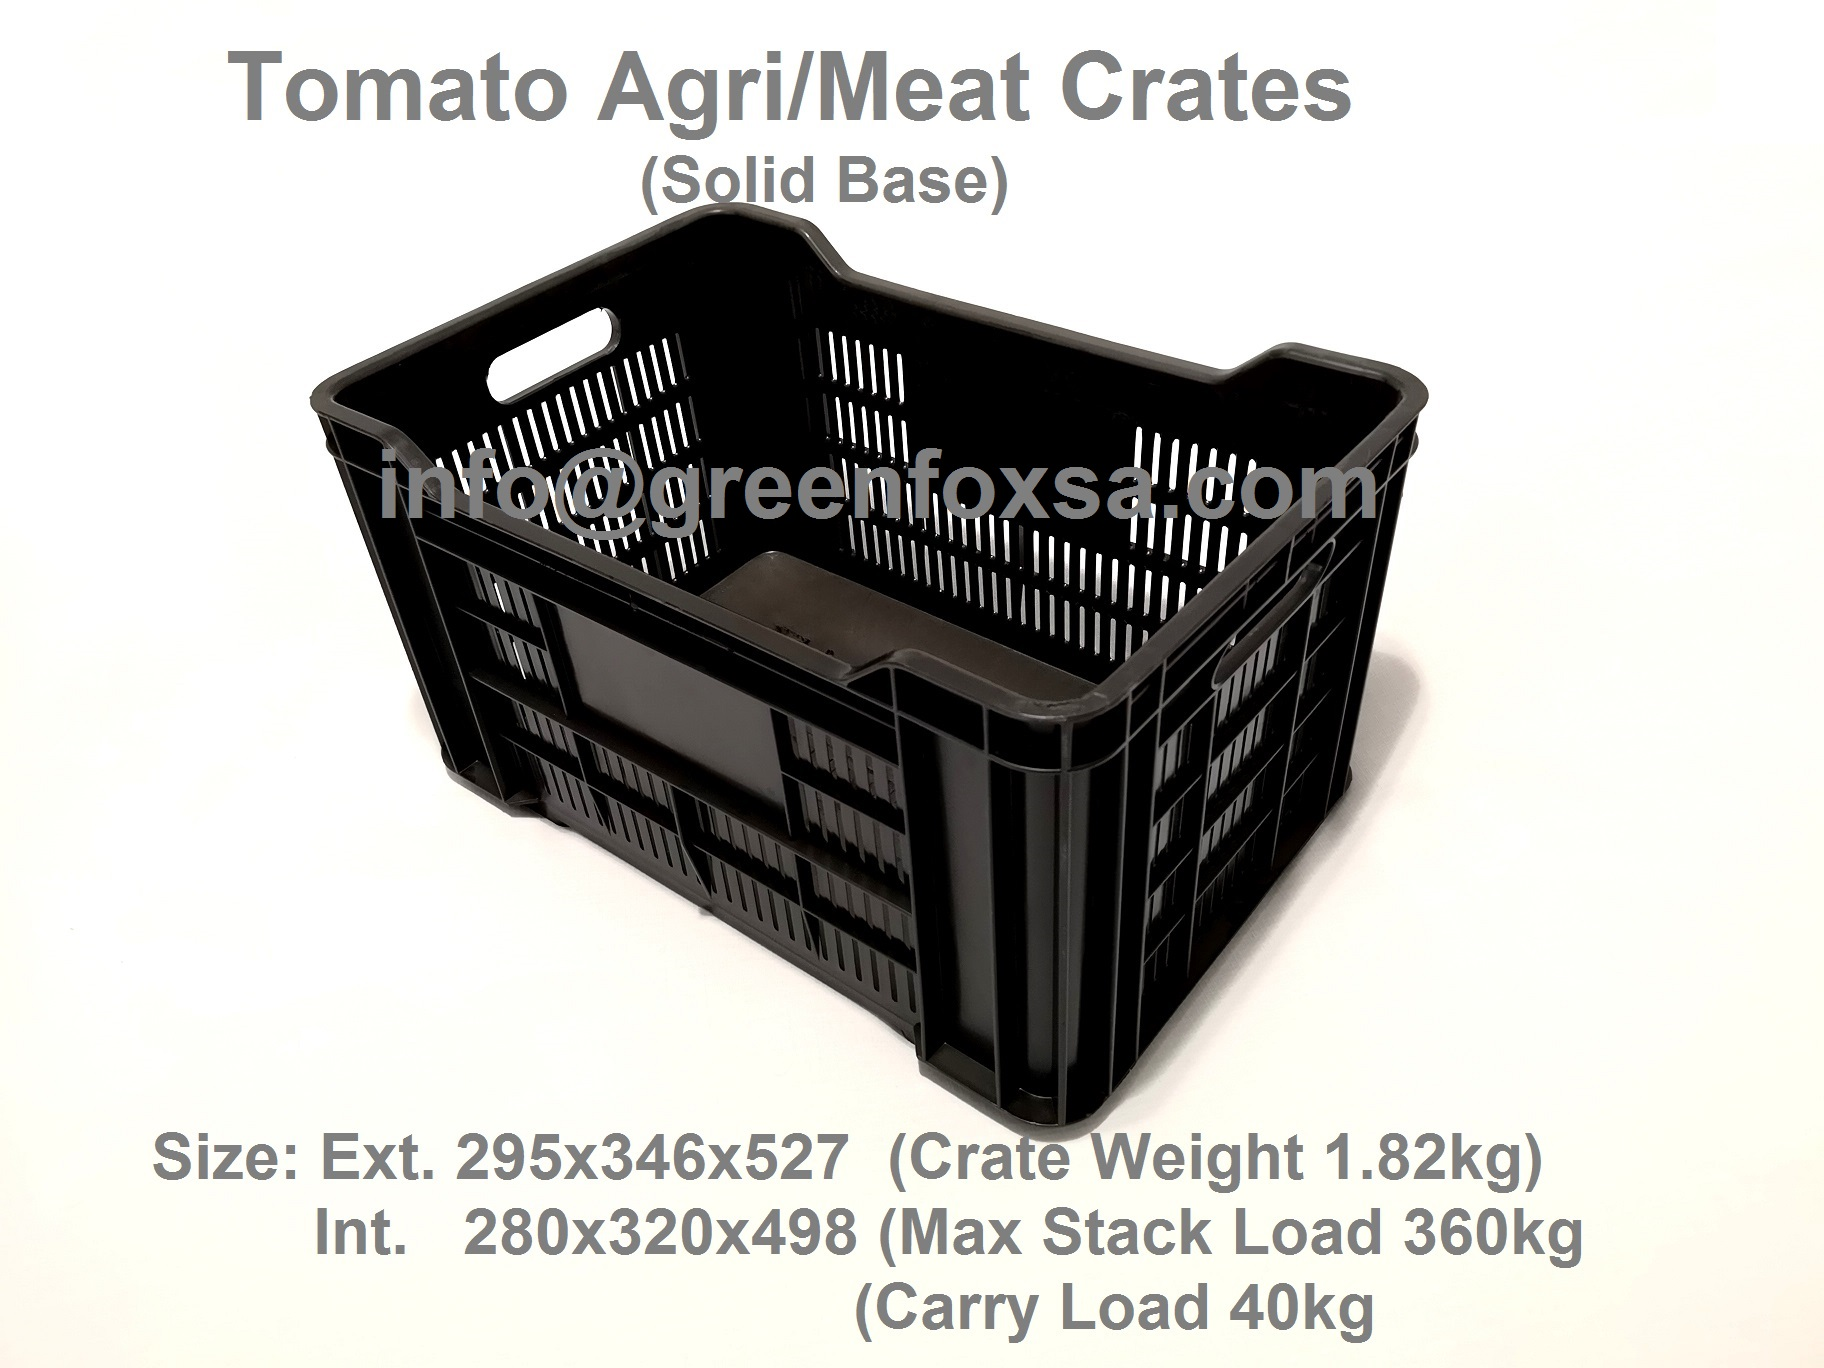 plastic-crates-agricultural-tomato-fruit-meat-lug-black-recycle-